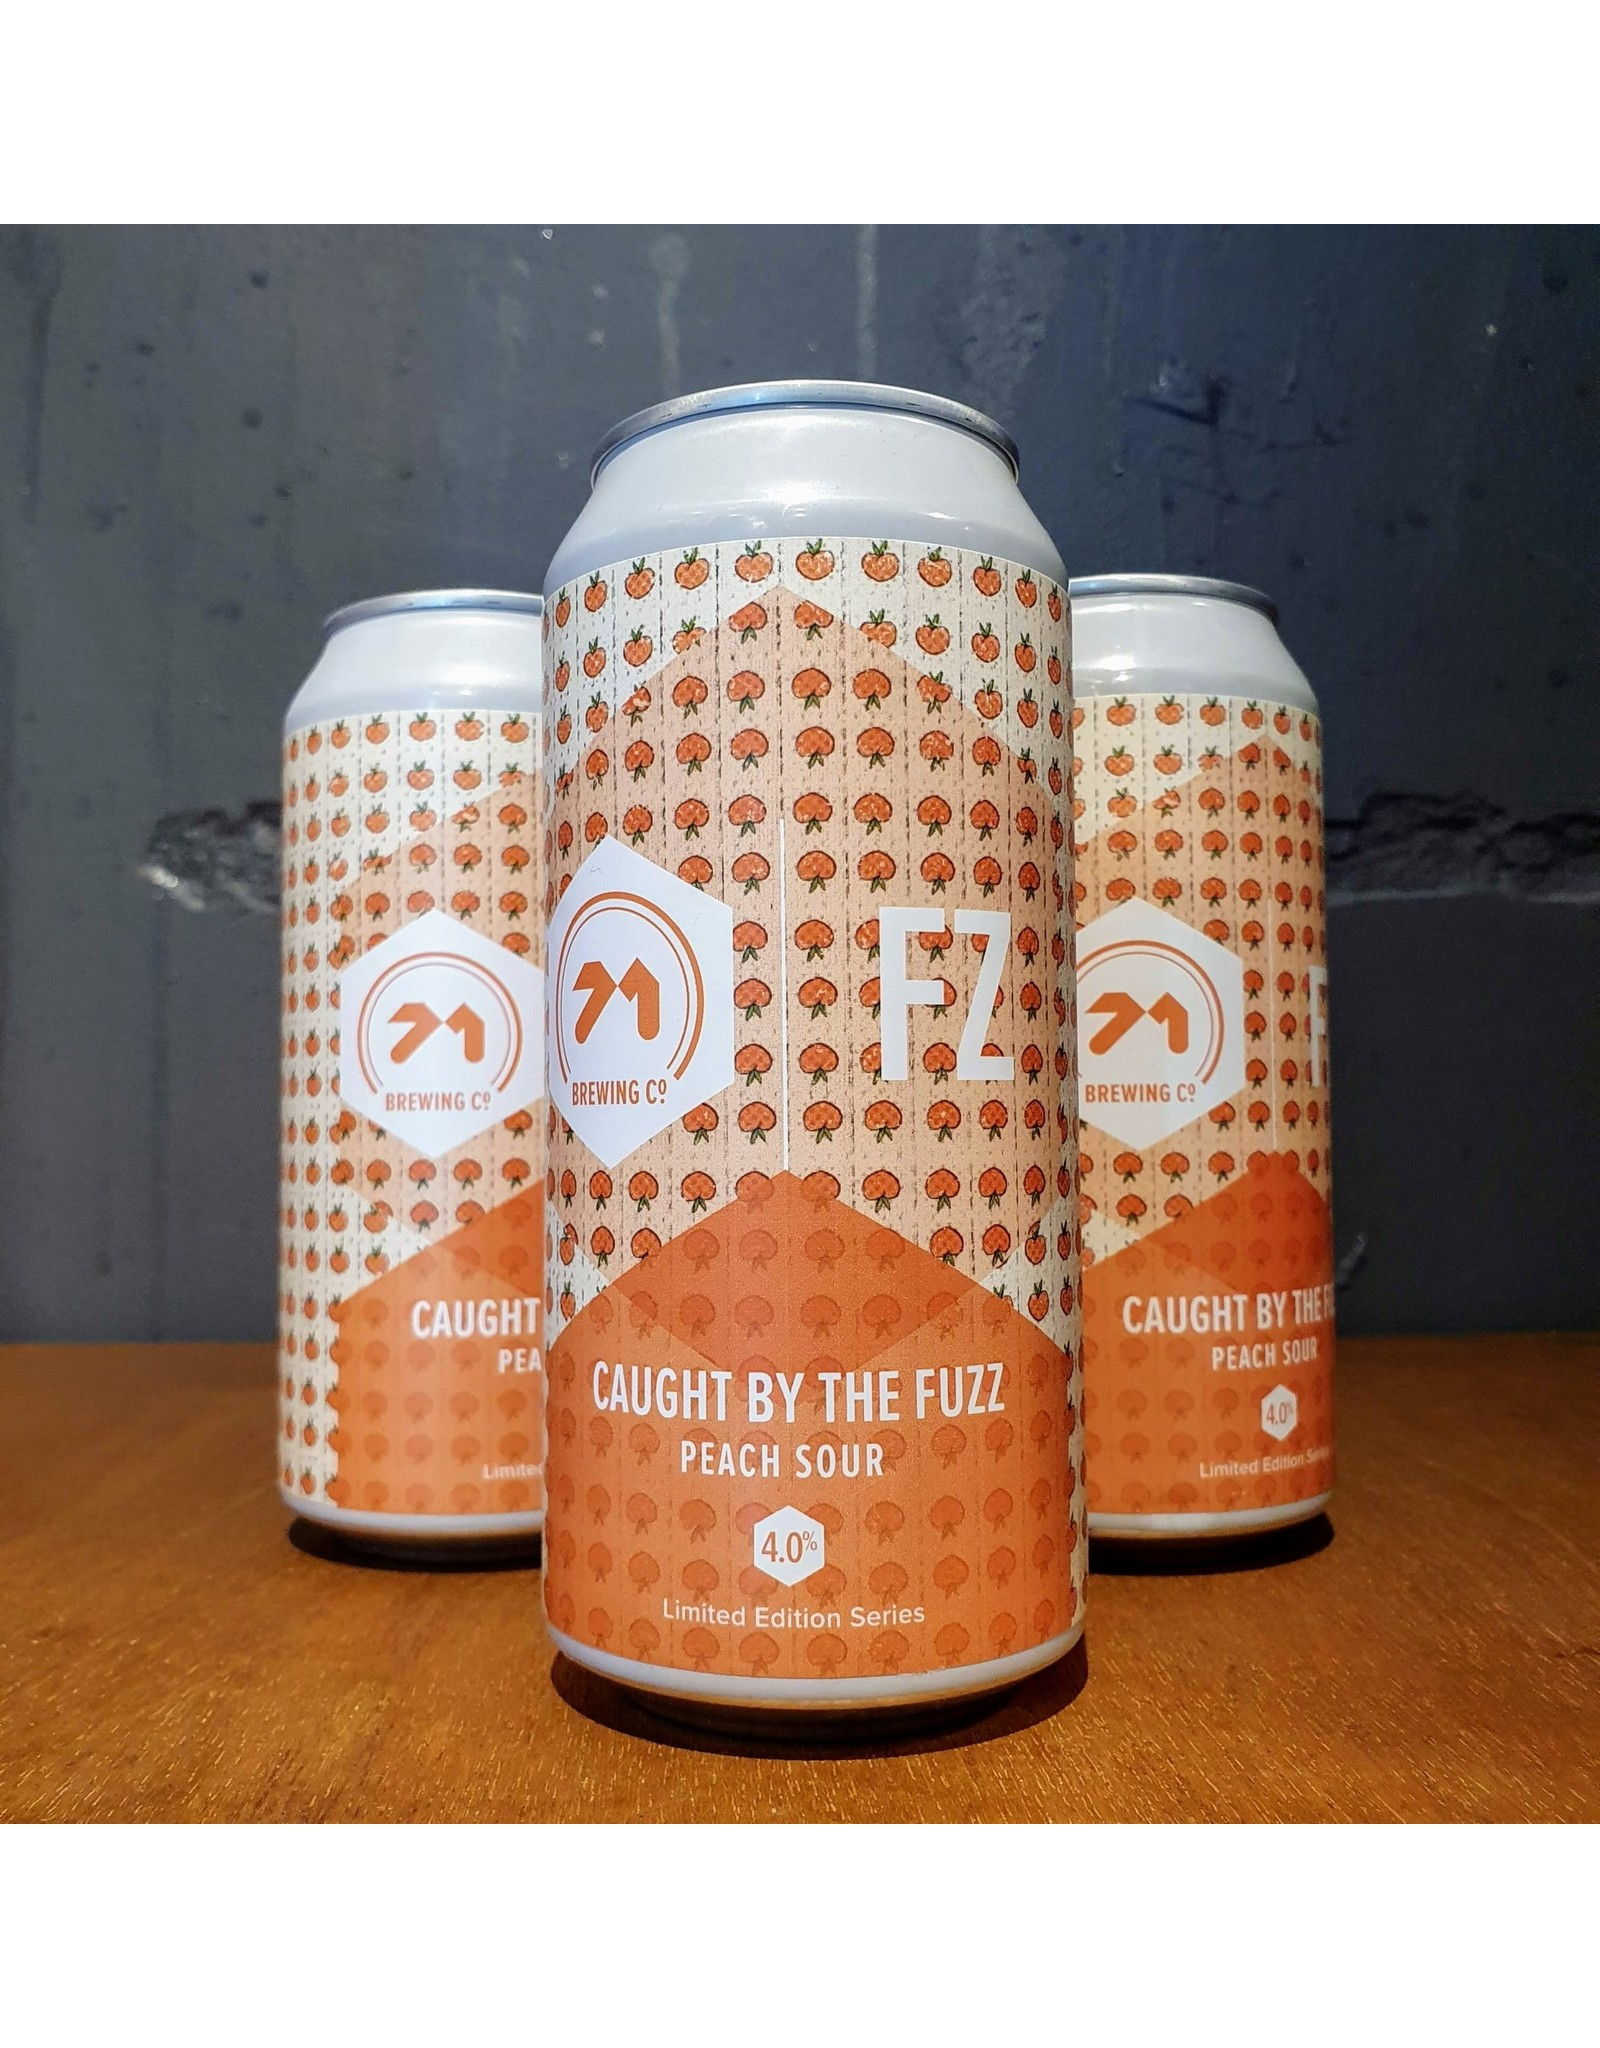 71 Brewing: Caught by the Fuzz